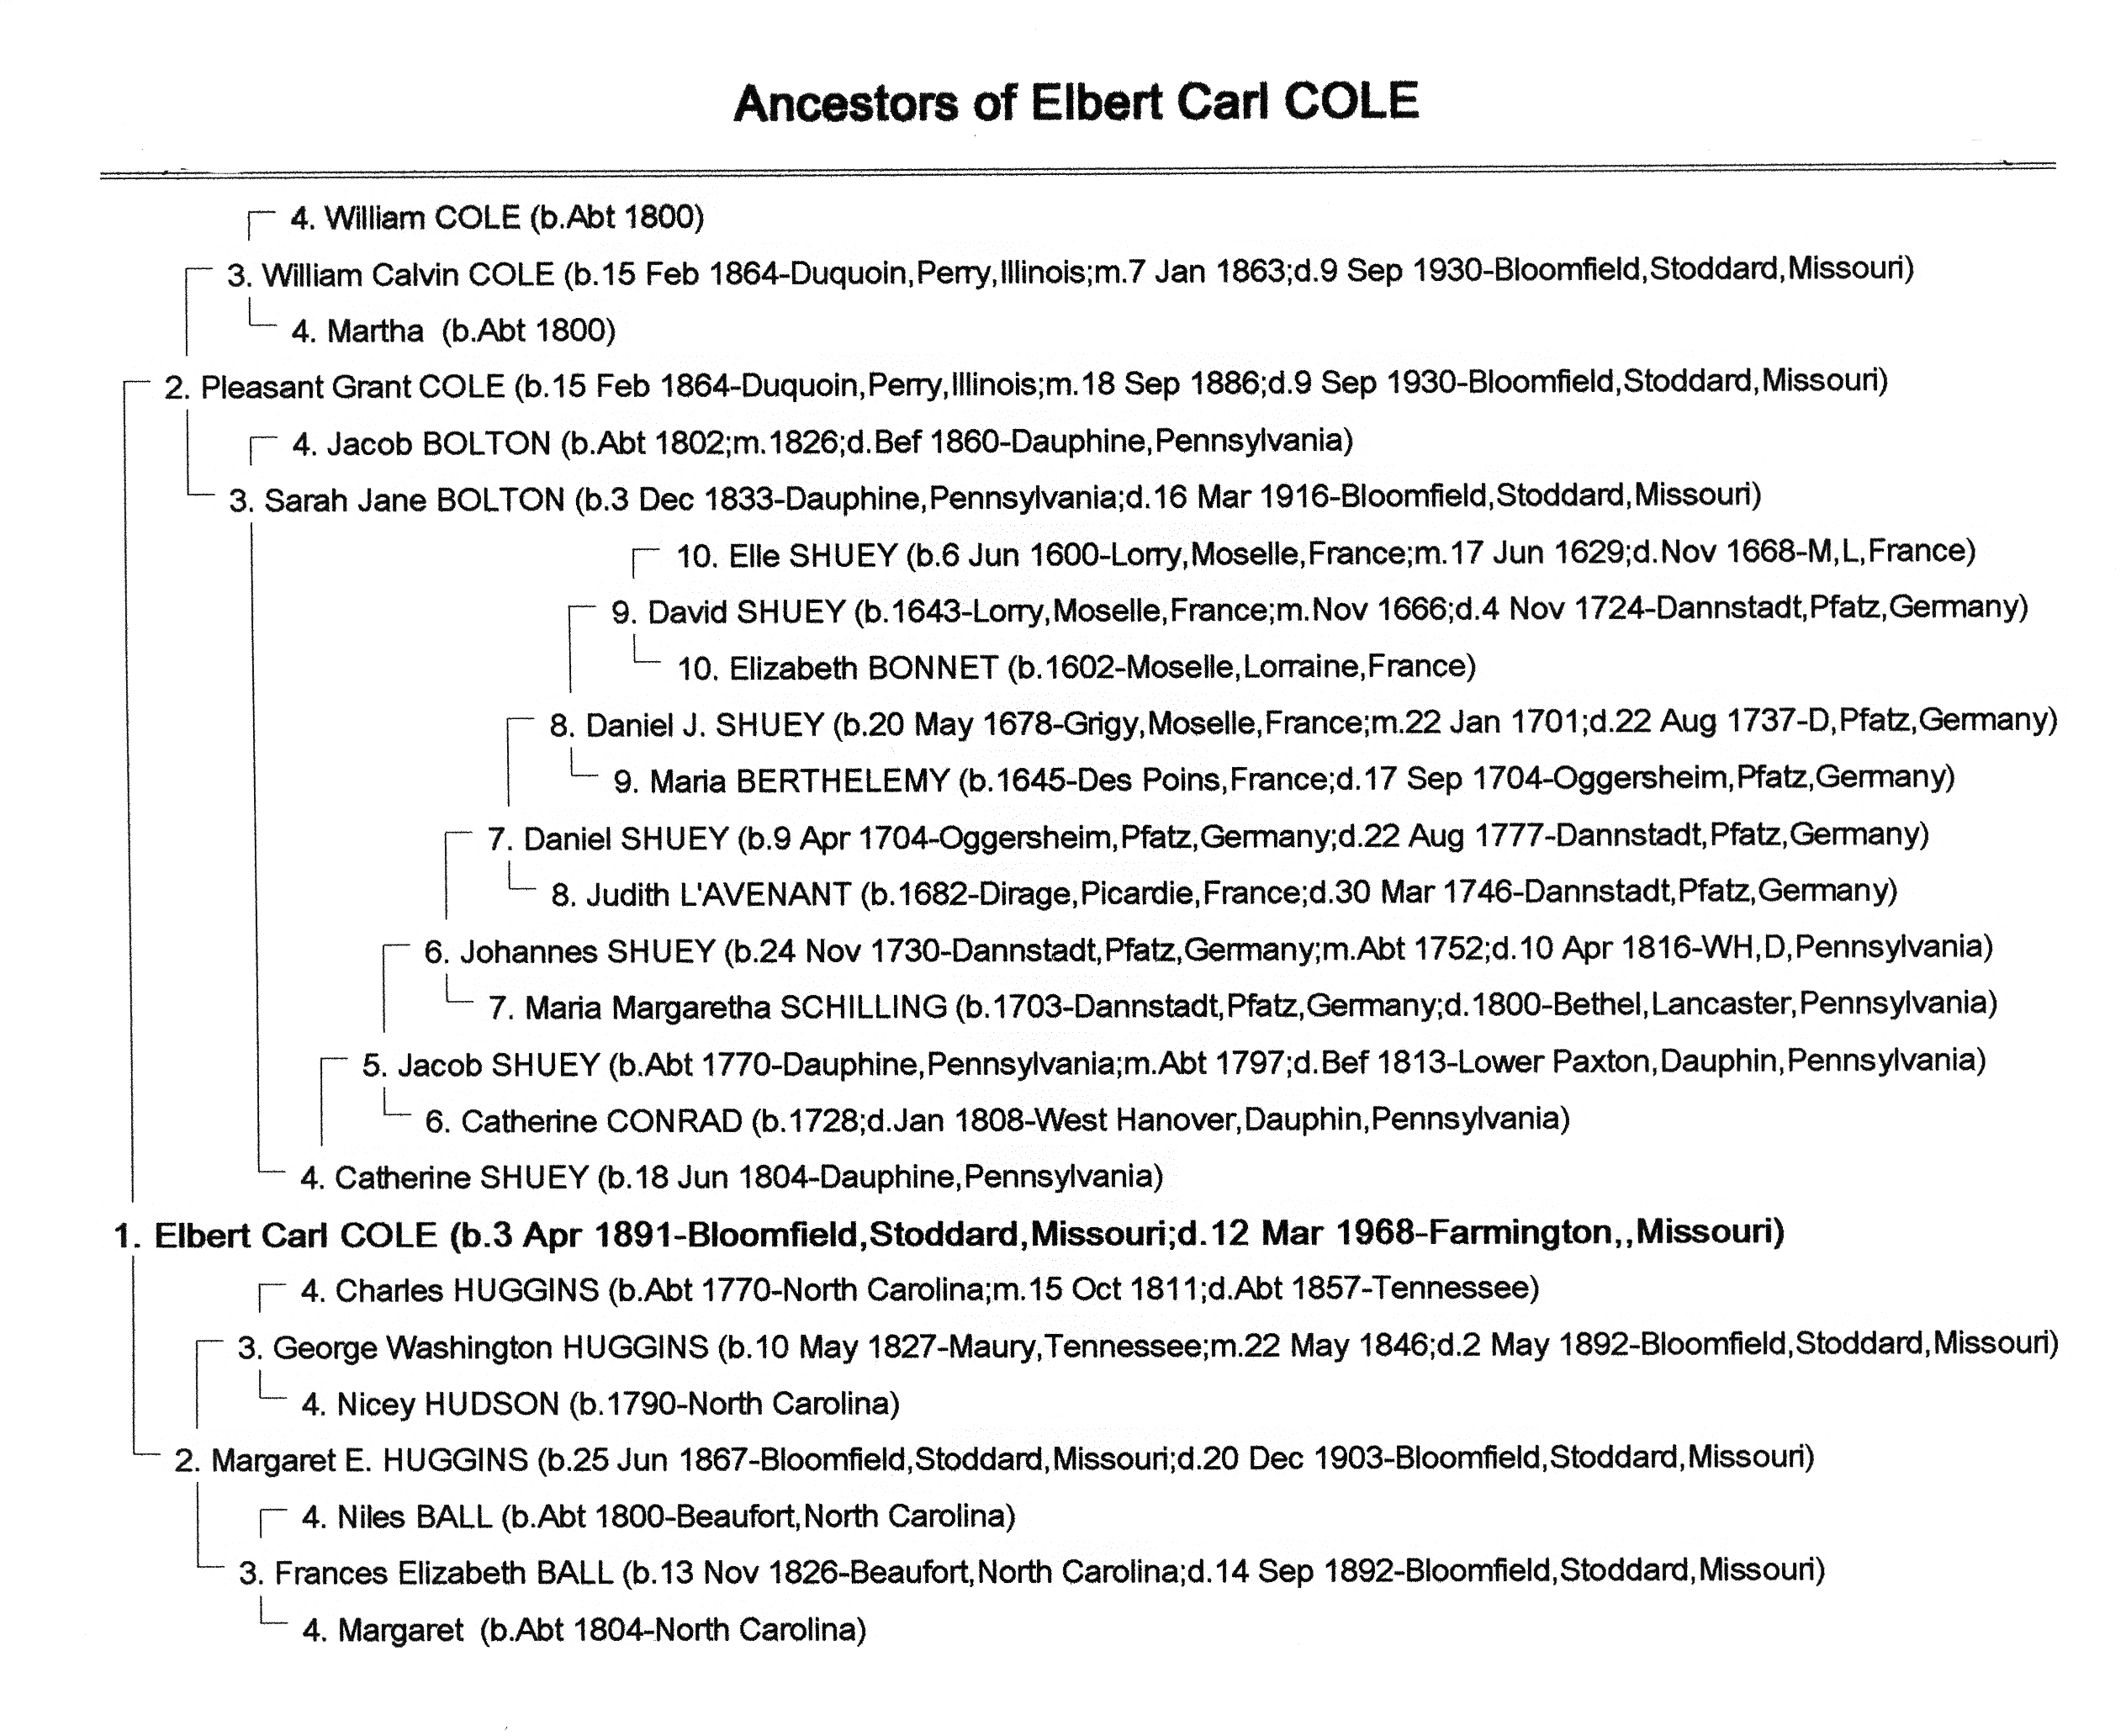 how can i find cole ancestors